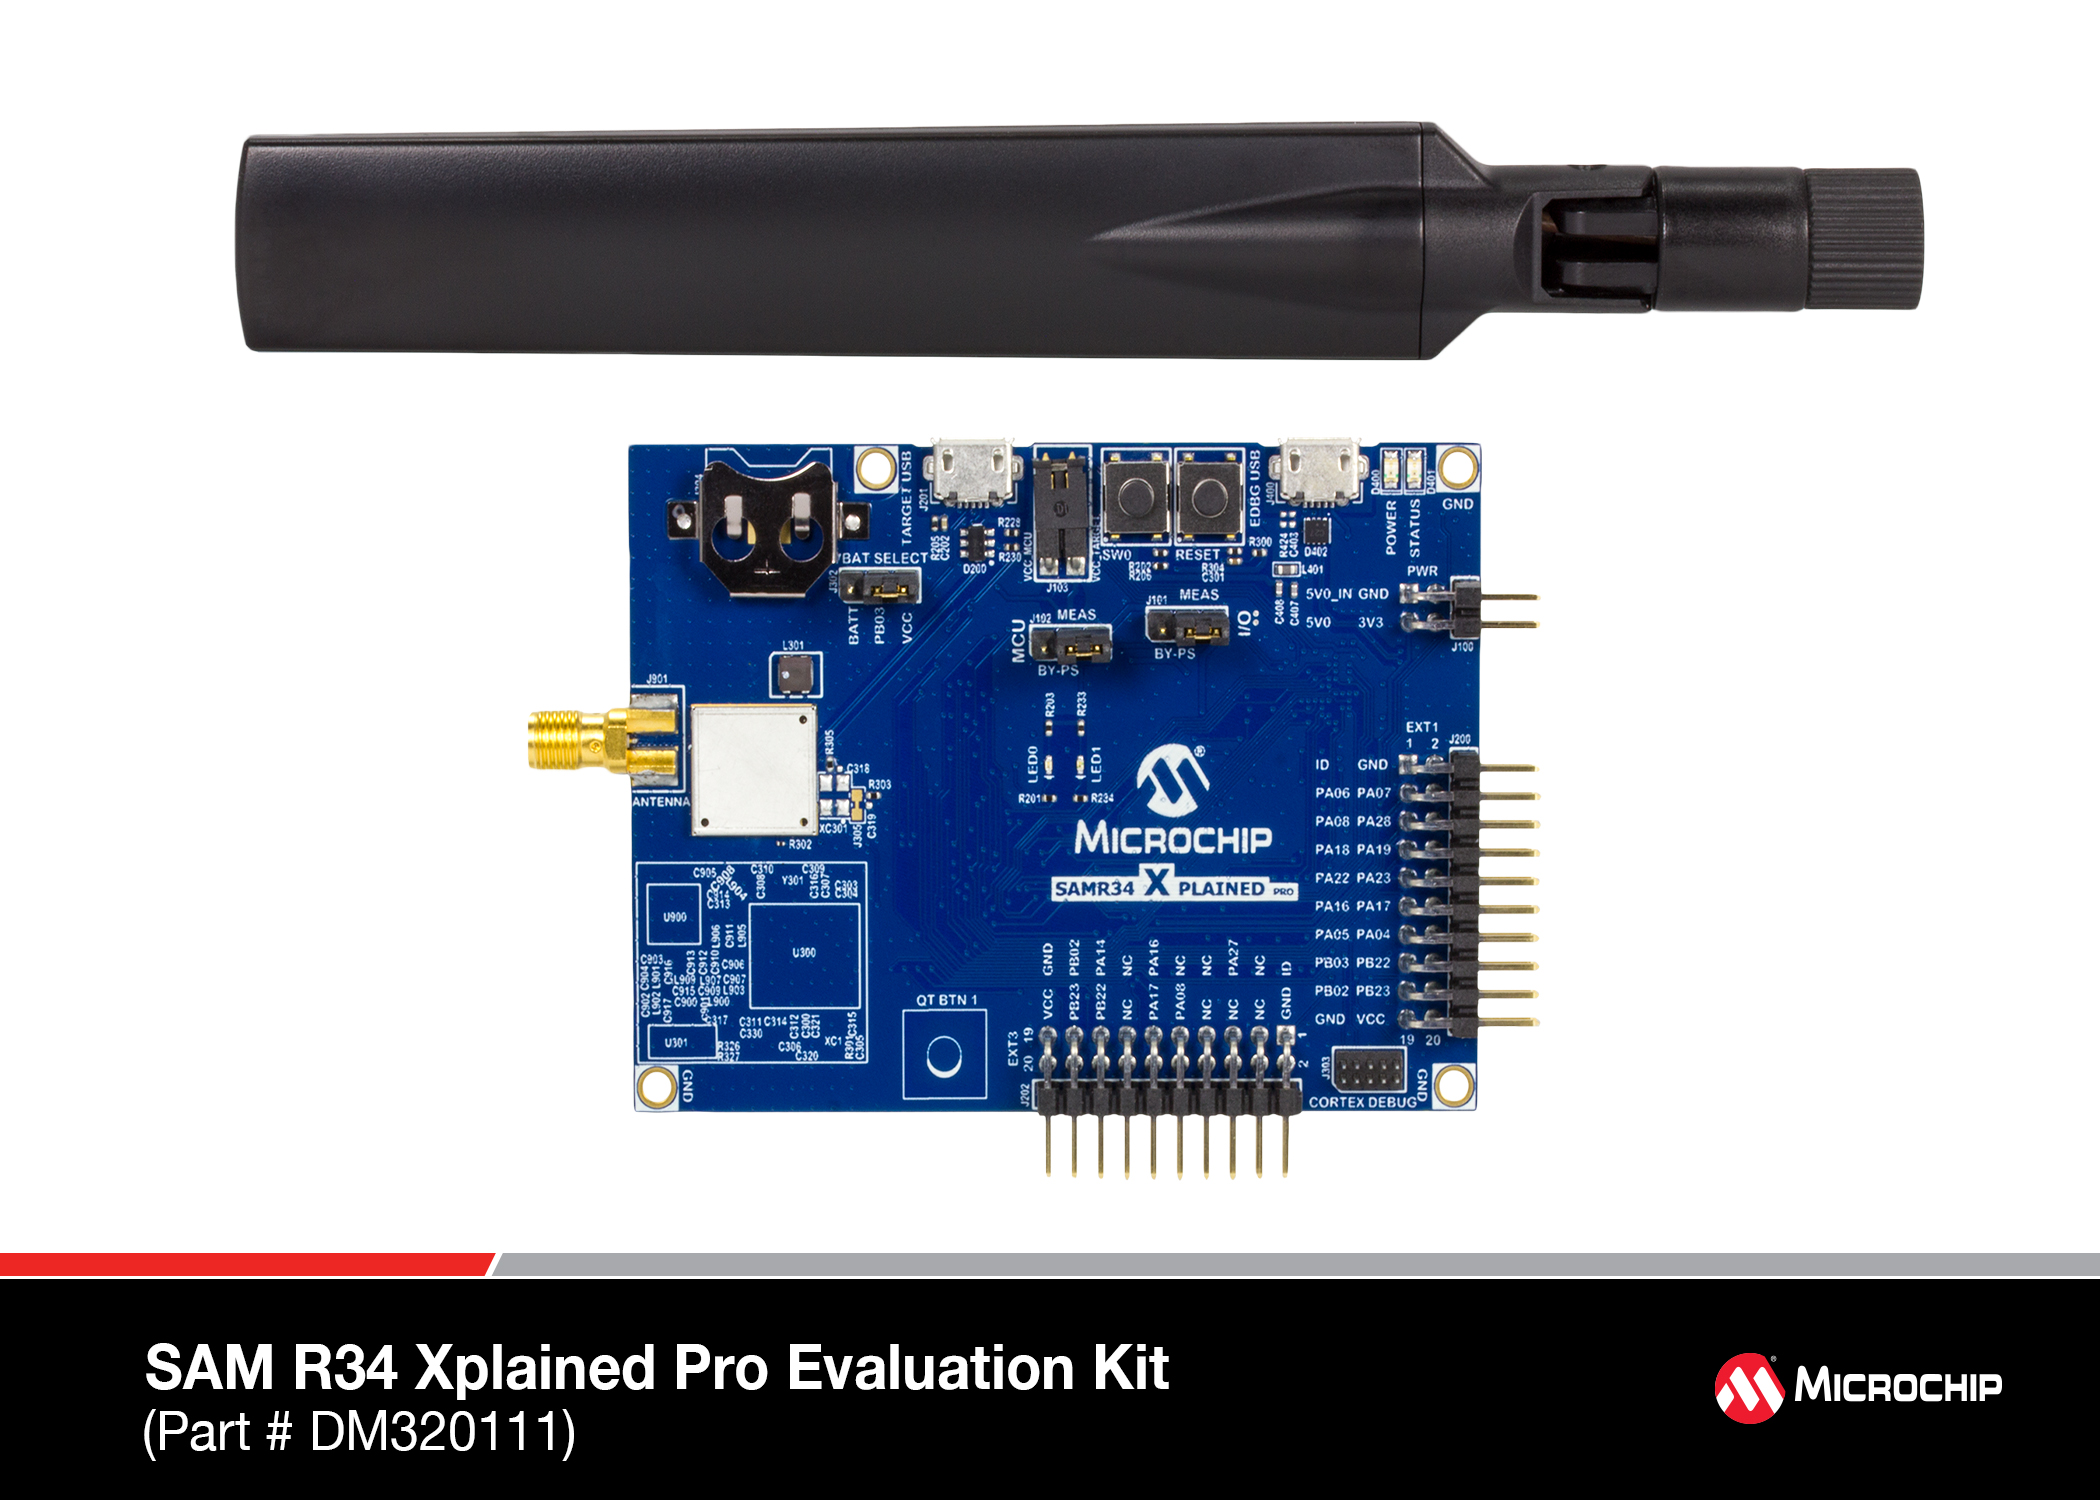 SAM R34 Xplained Pro Evaluation Kit